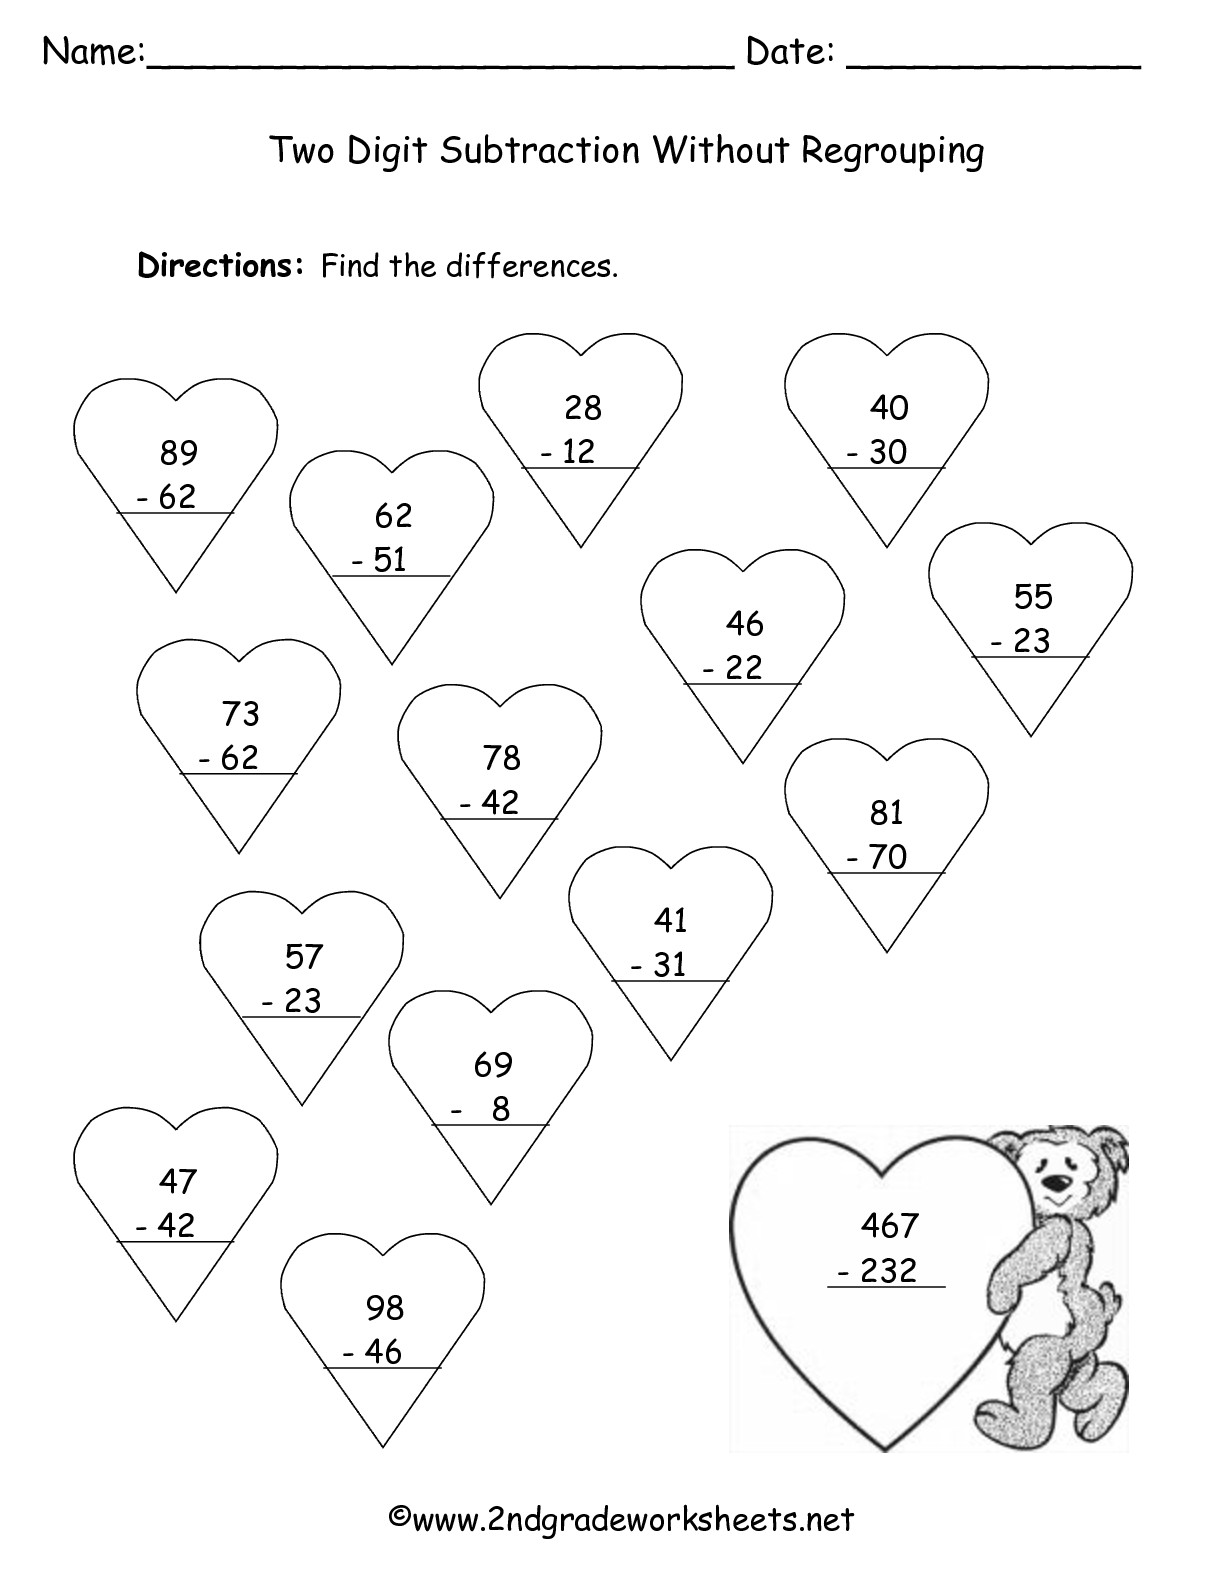 Valentines Day Printouts and Worksheets – Two Digit Subtraction Without Regrouping Worksheets